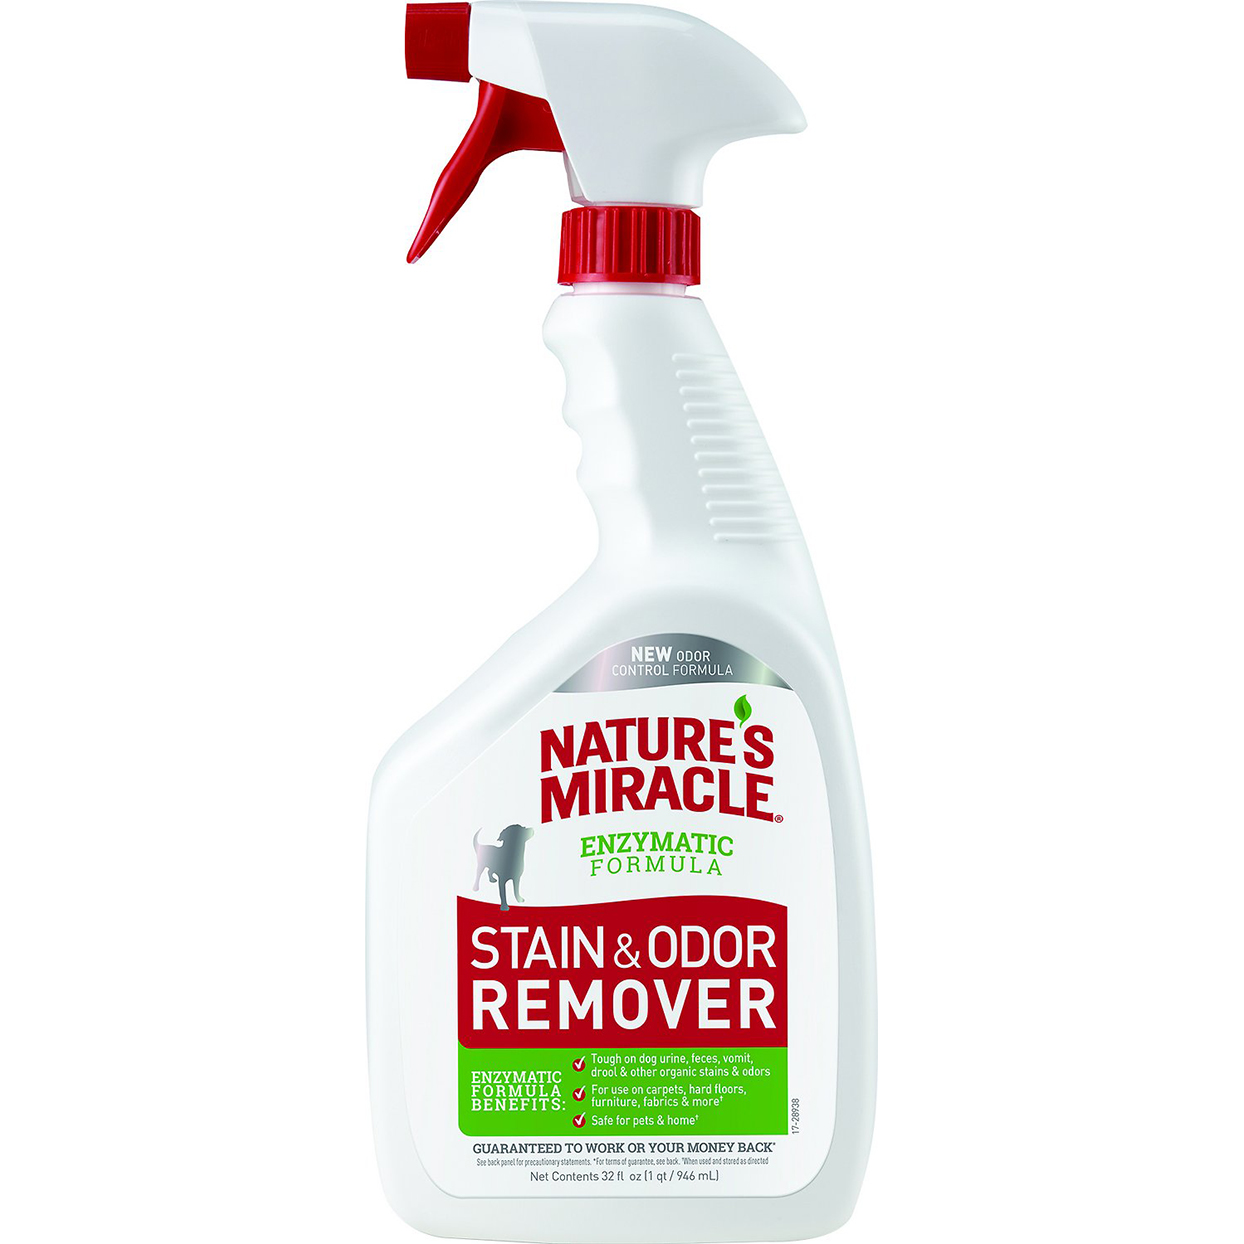 natures miracle stain odor remover